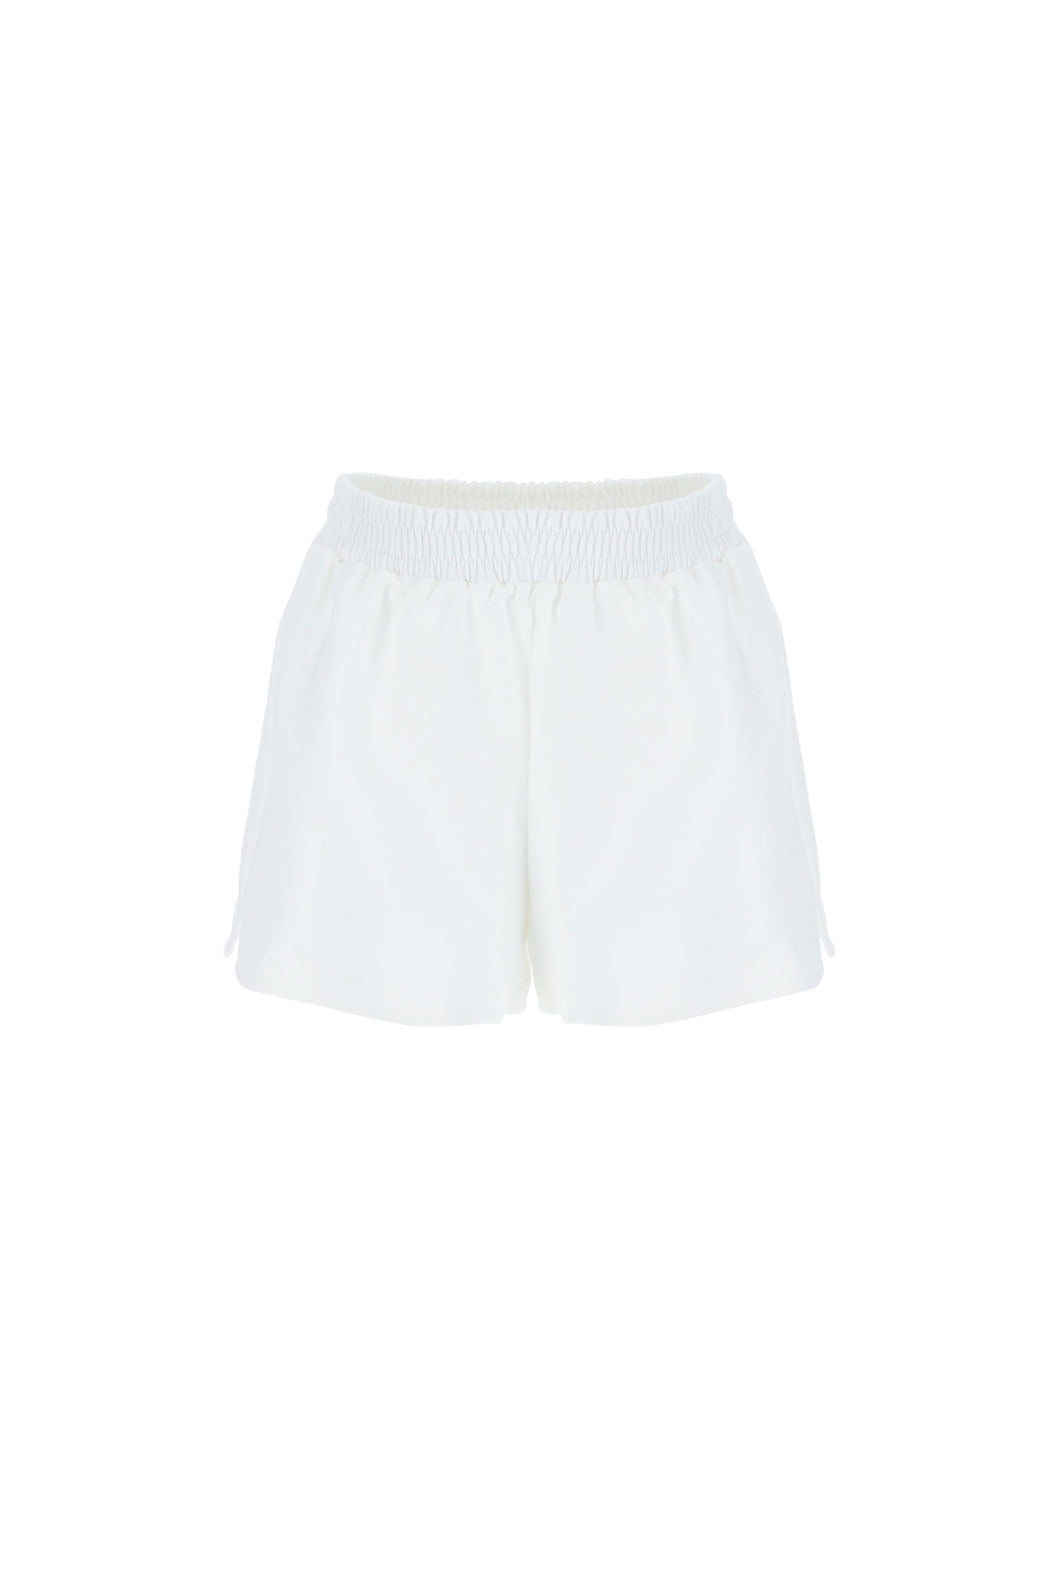 SHORTS IN FELPA CON SPACCHETTO LATERALE IMPERIAL